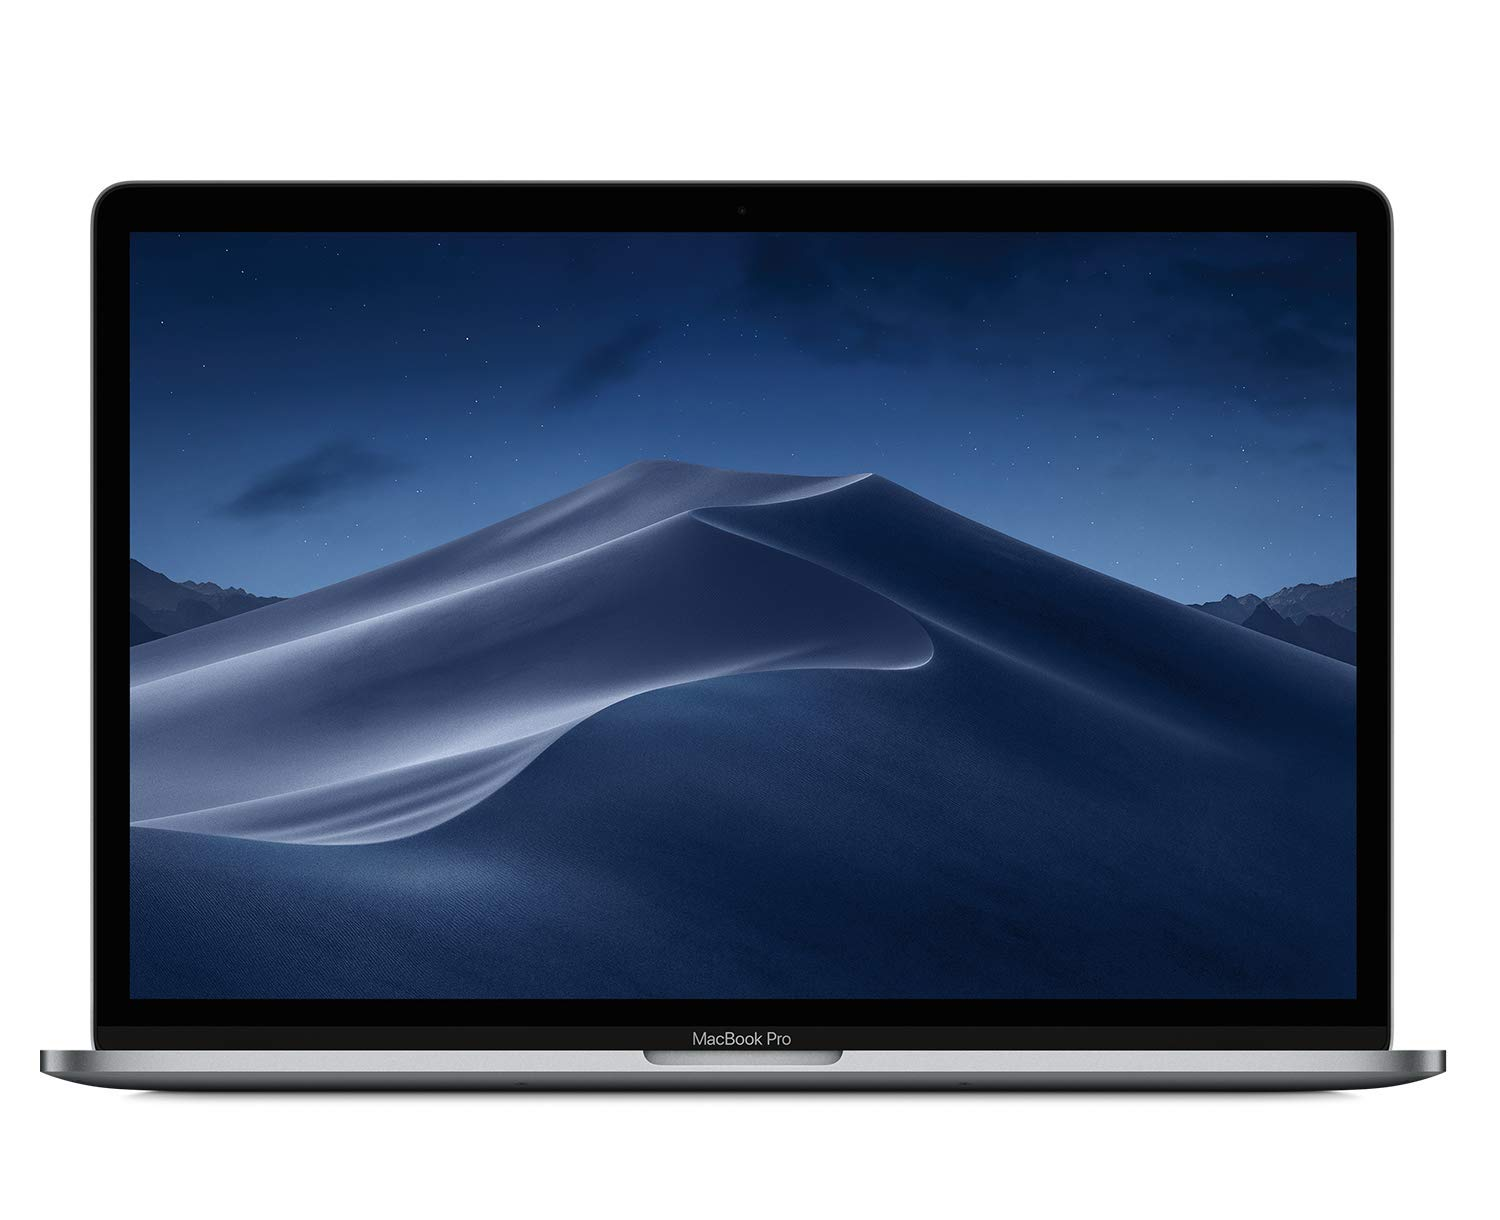 Deal Alert: The new 13-inch Macbook Pro is $200 cheaper today - MSPoweruser